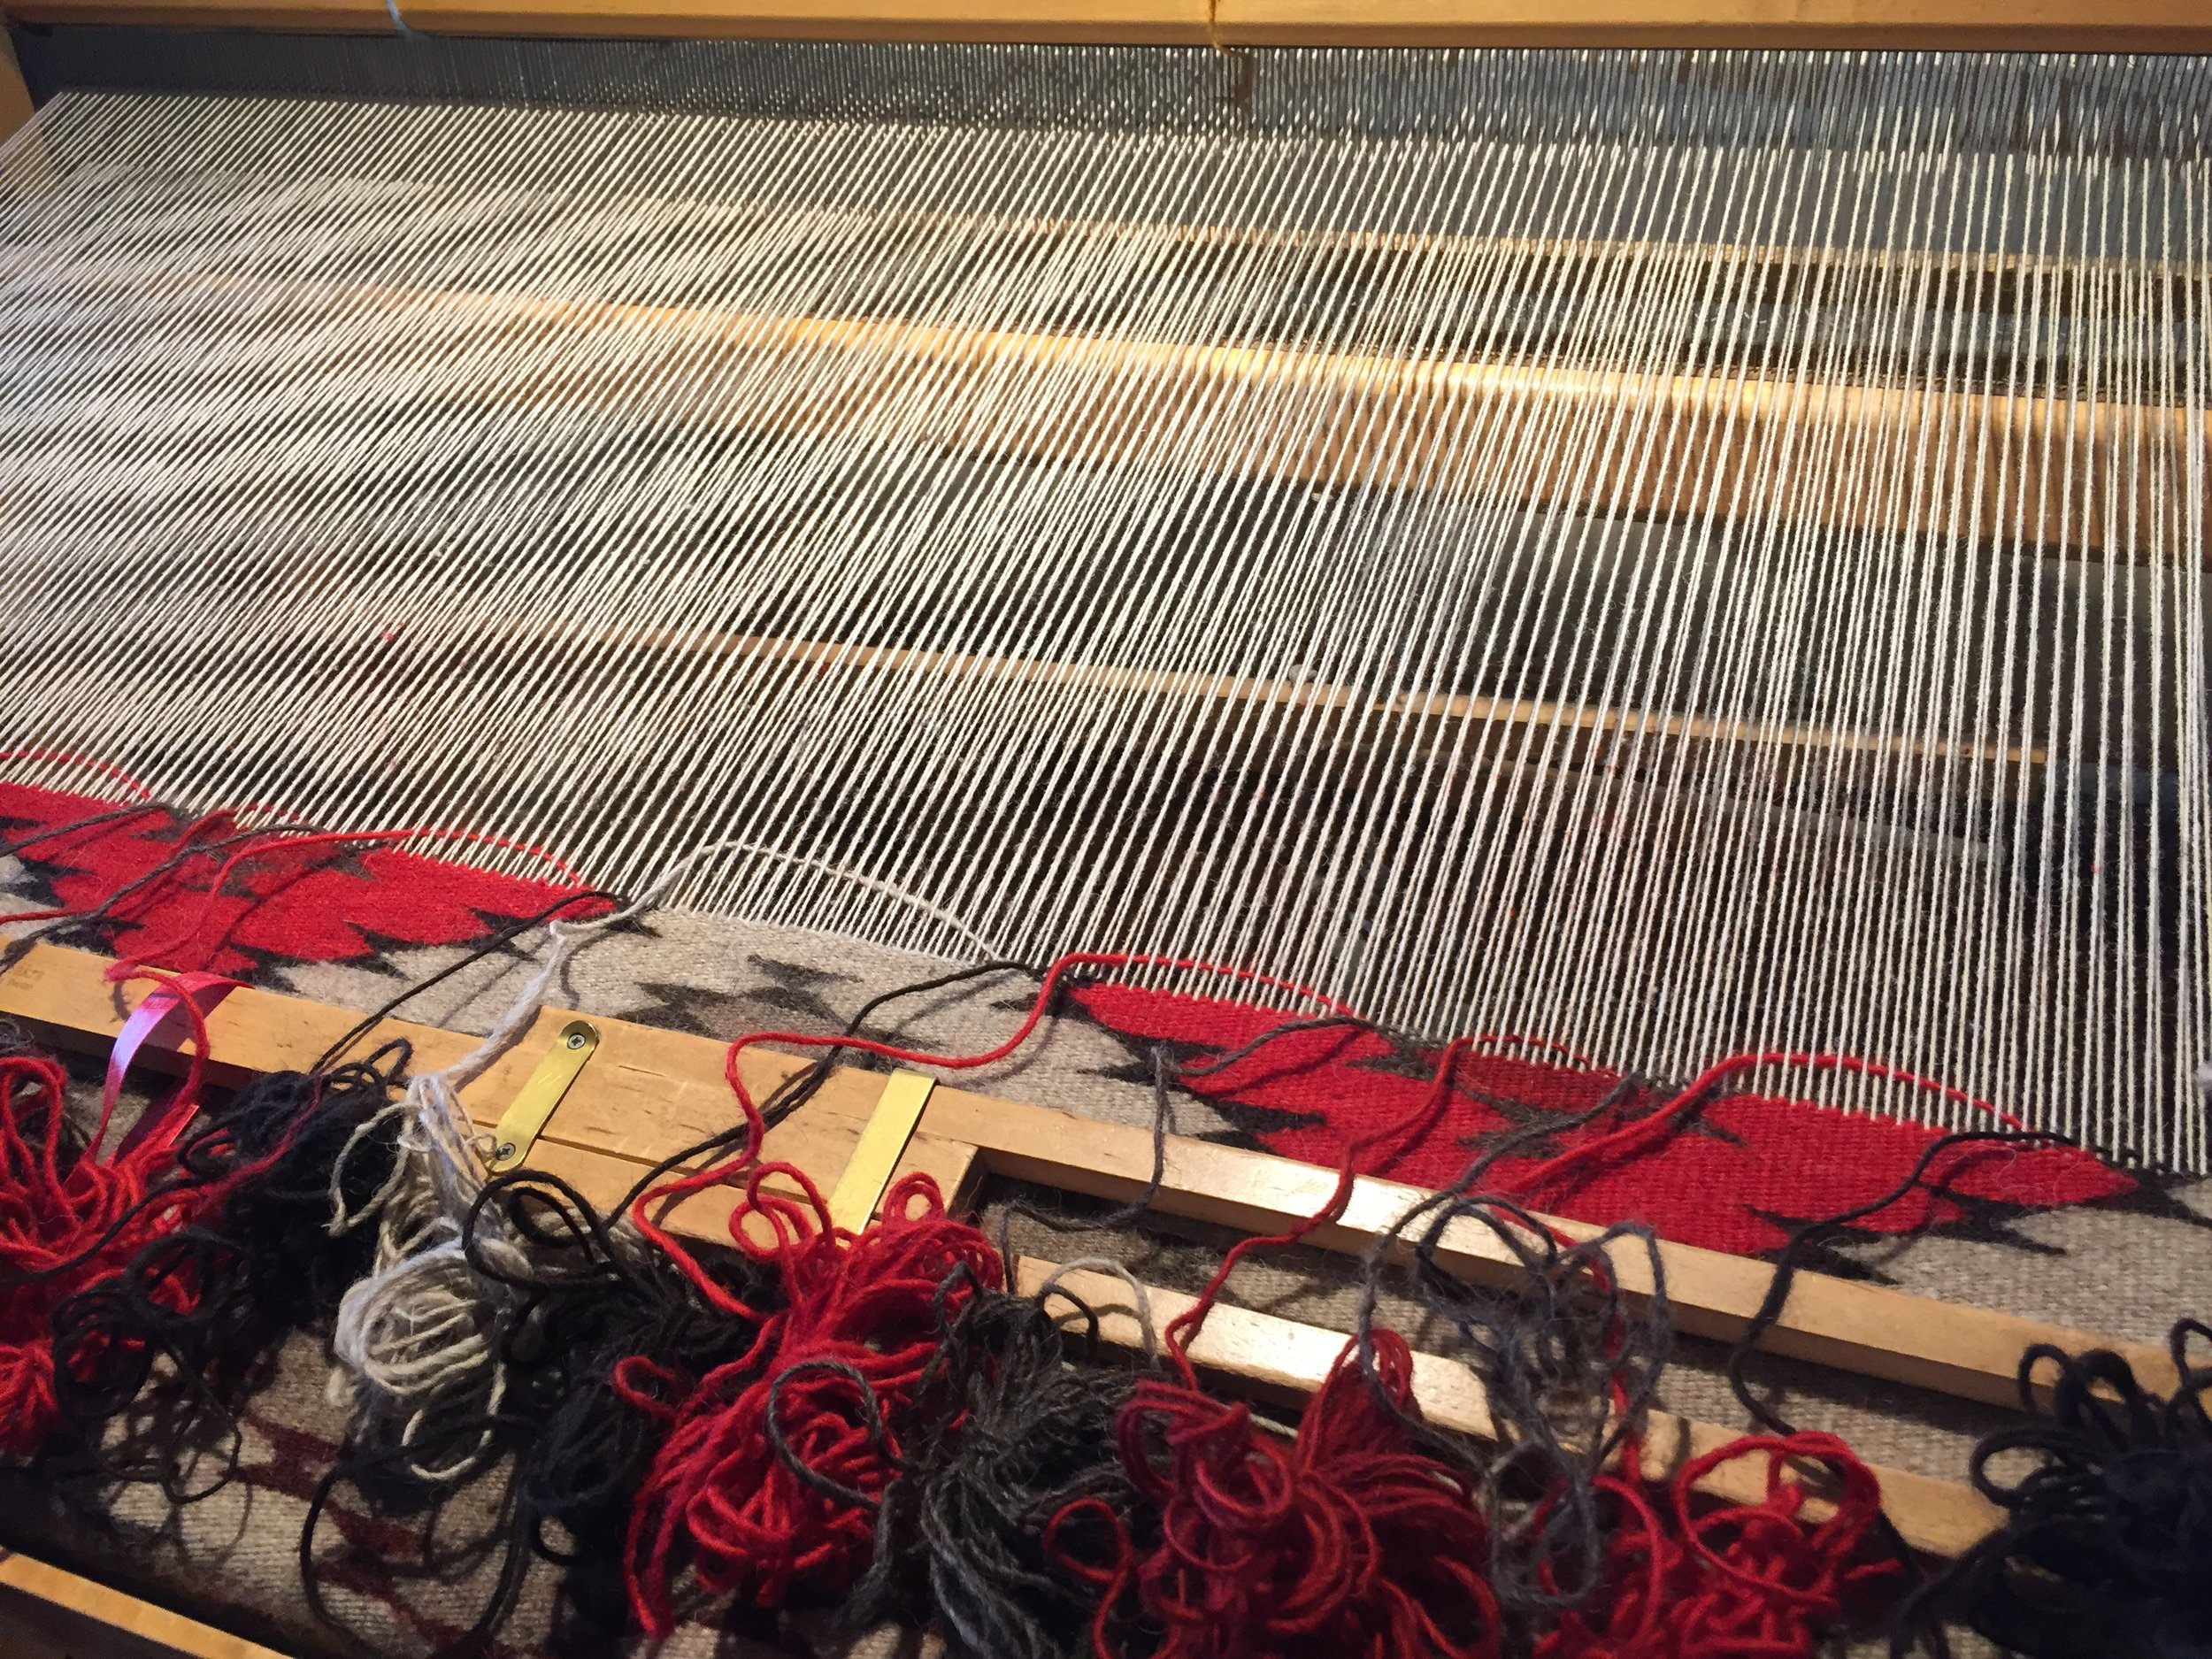 """Each of the yarn colors waiting to be added to the tapestry is organized into an individual hank, also referred to as a """"butterfly."""""""